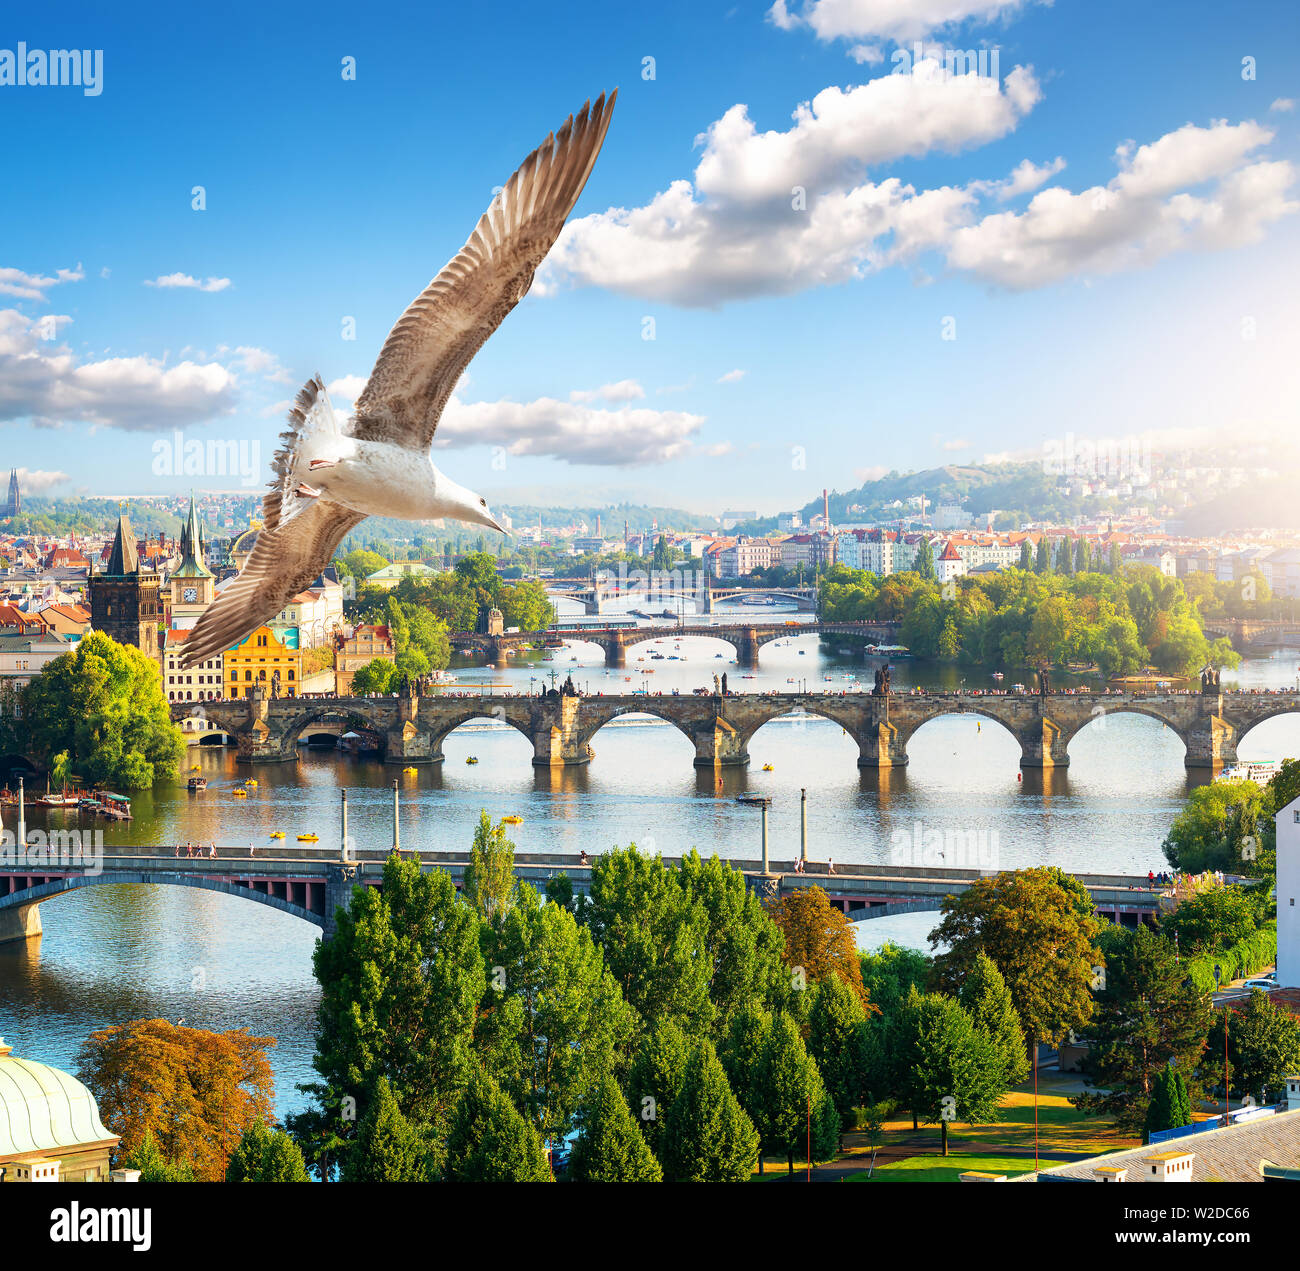 Row of bridges in Prague at summer day - Stock Image